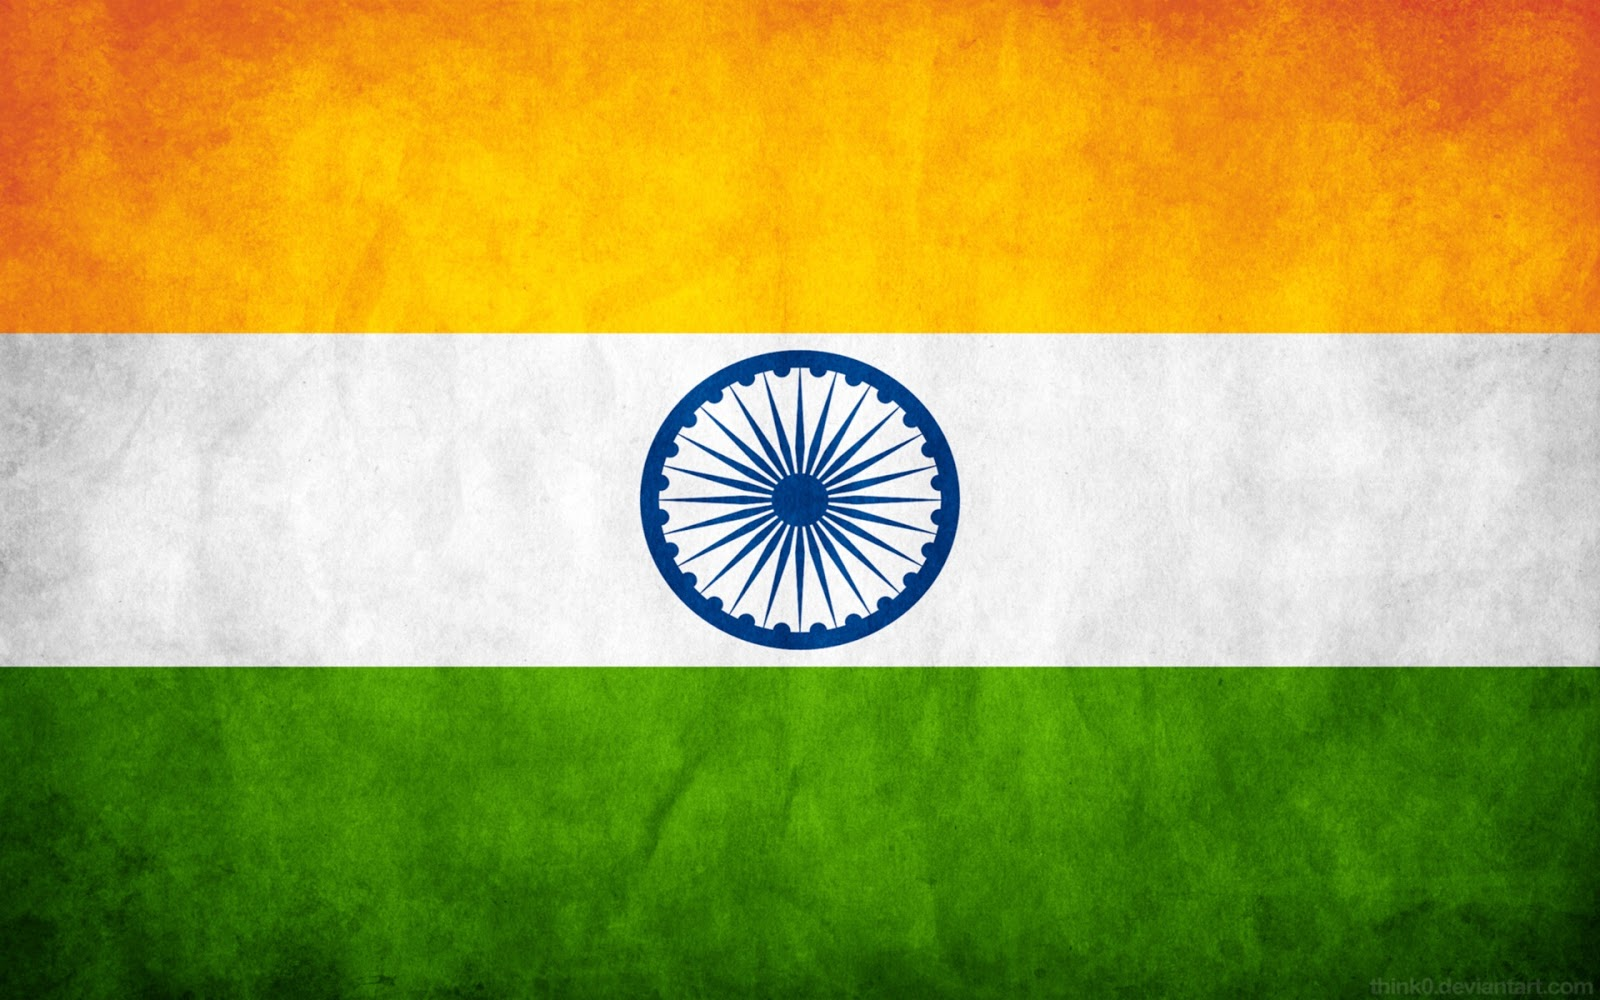 Indian Flag Hd Wallpaper: Wallpaper Indian Flag